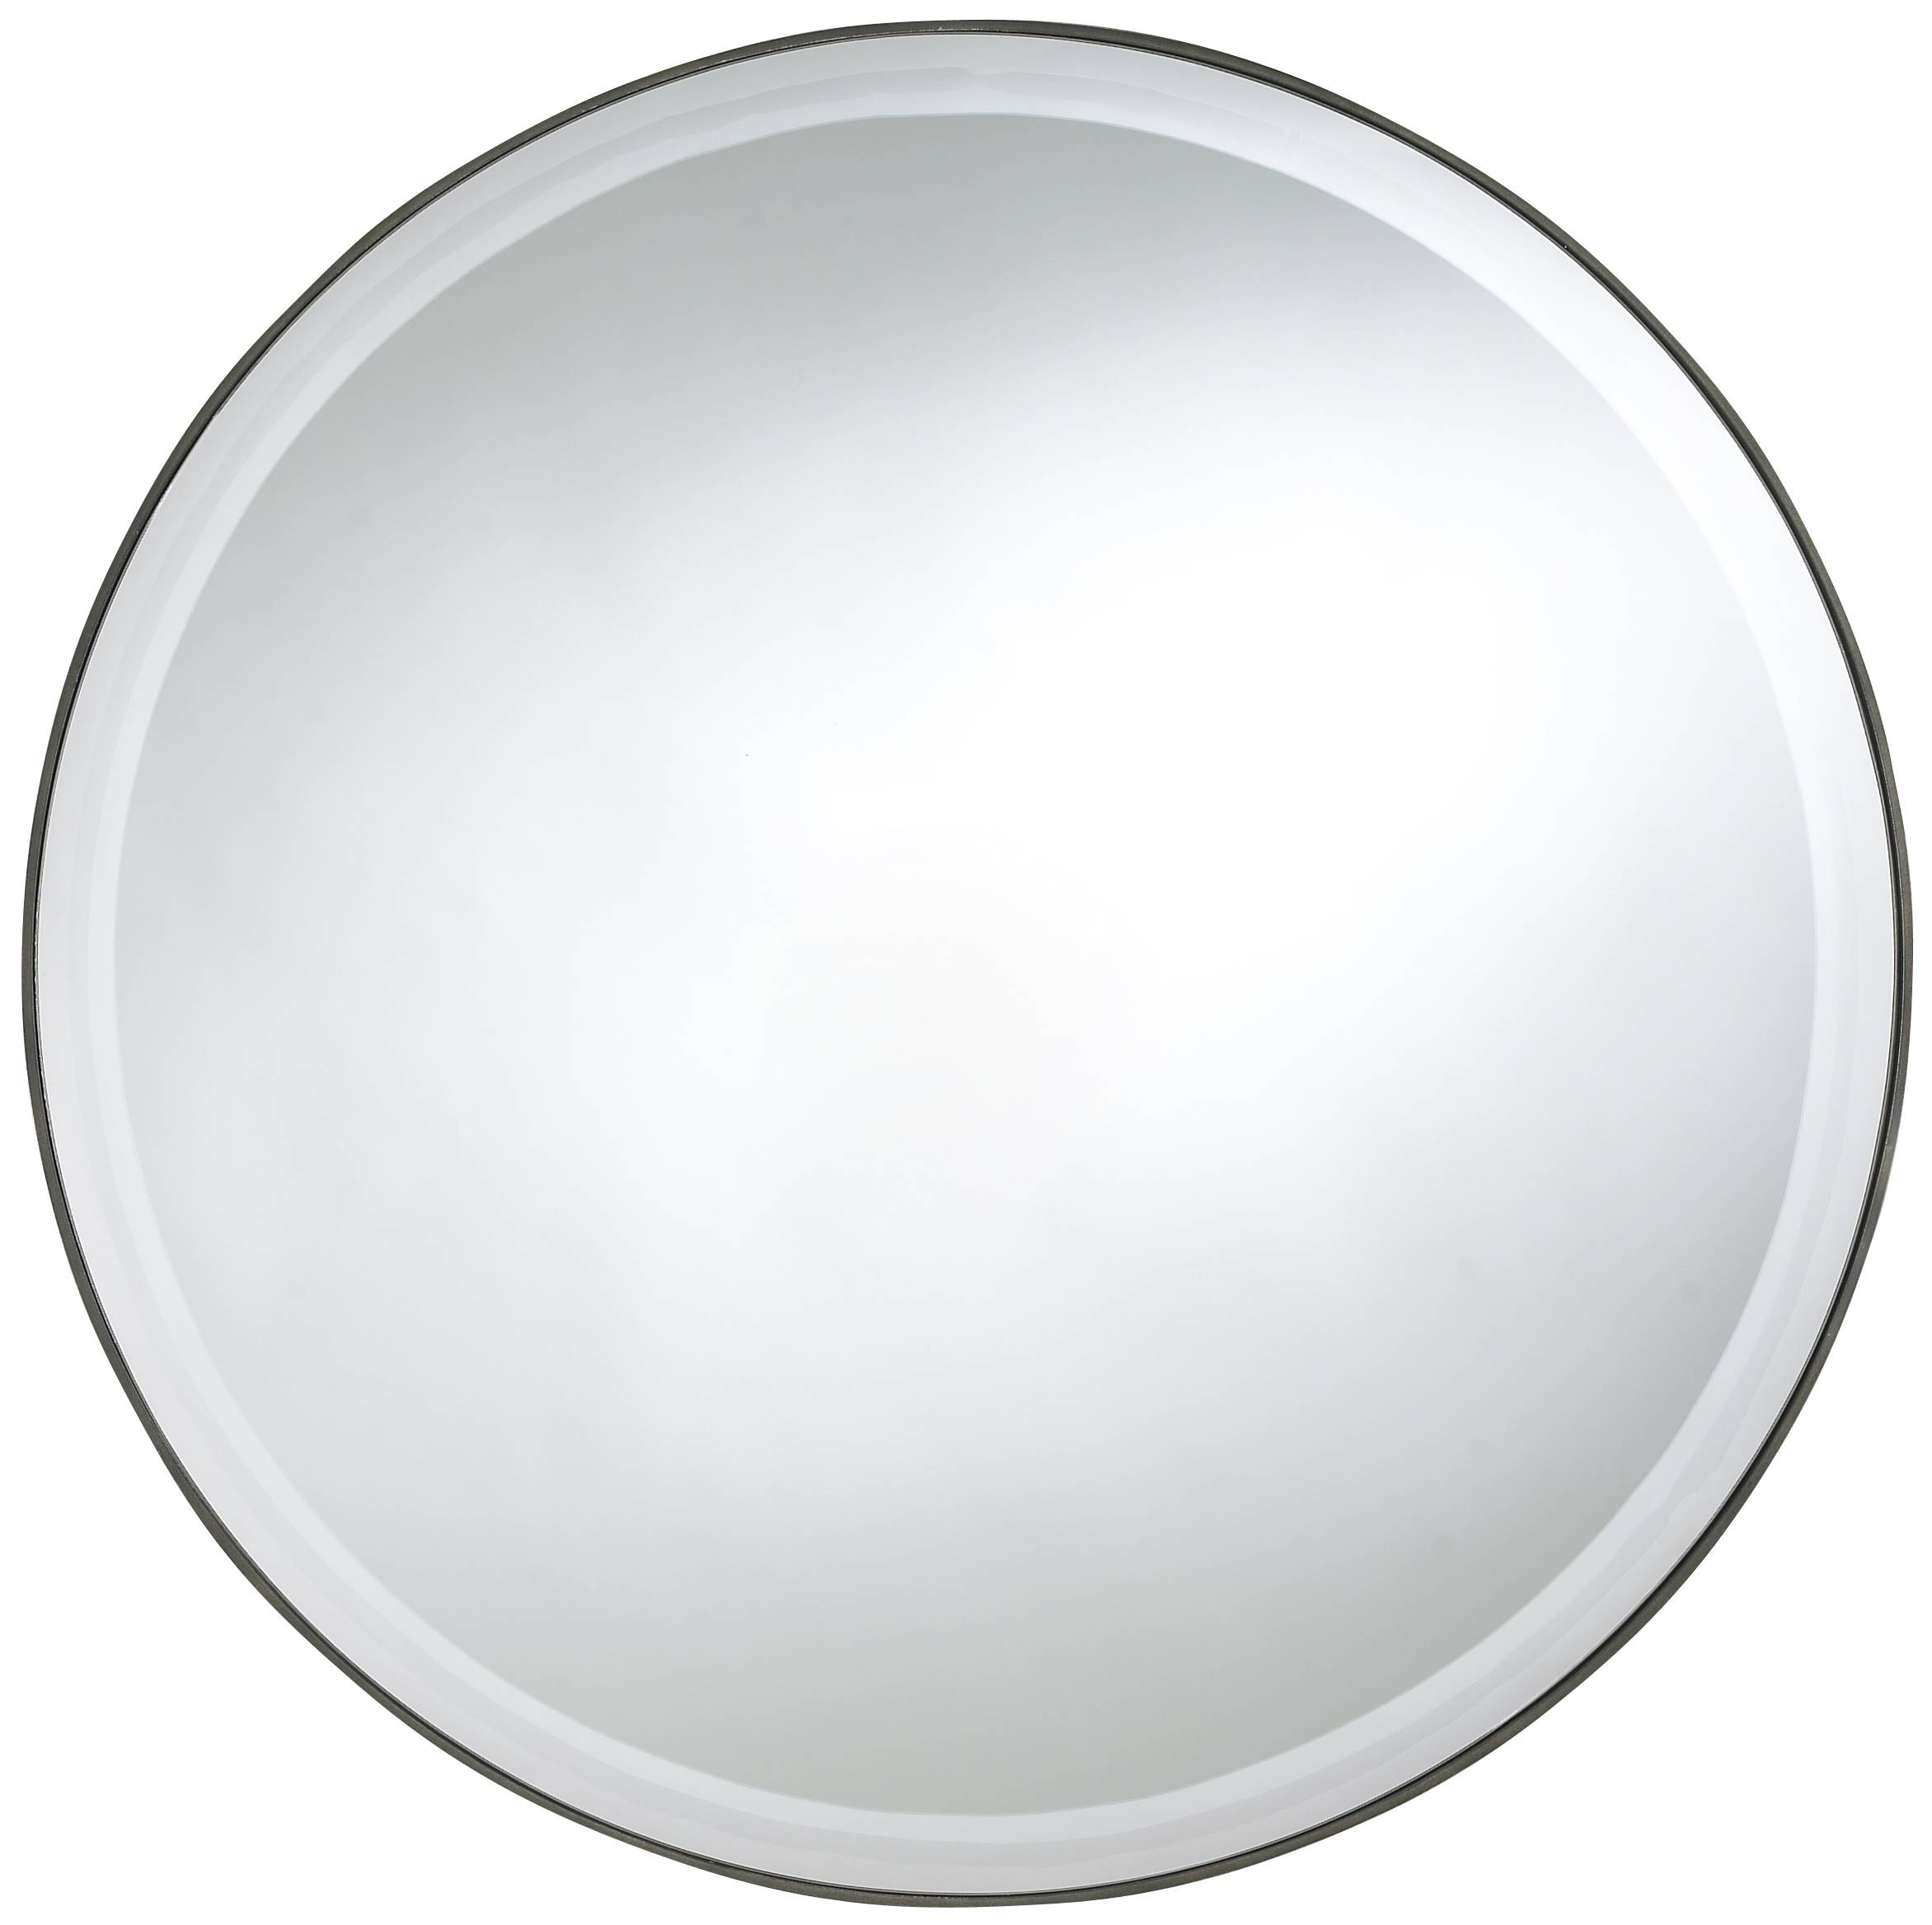 Round Mirror With Silver Steel Frame Of Great Ideas Of Large Round Regarding Large Round Black Mirrors (View 9 of 15)